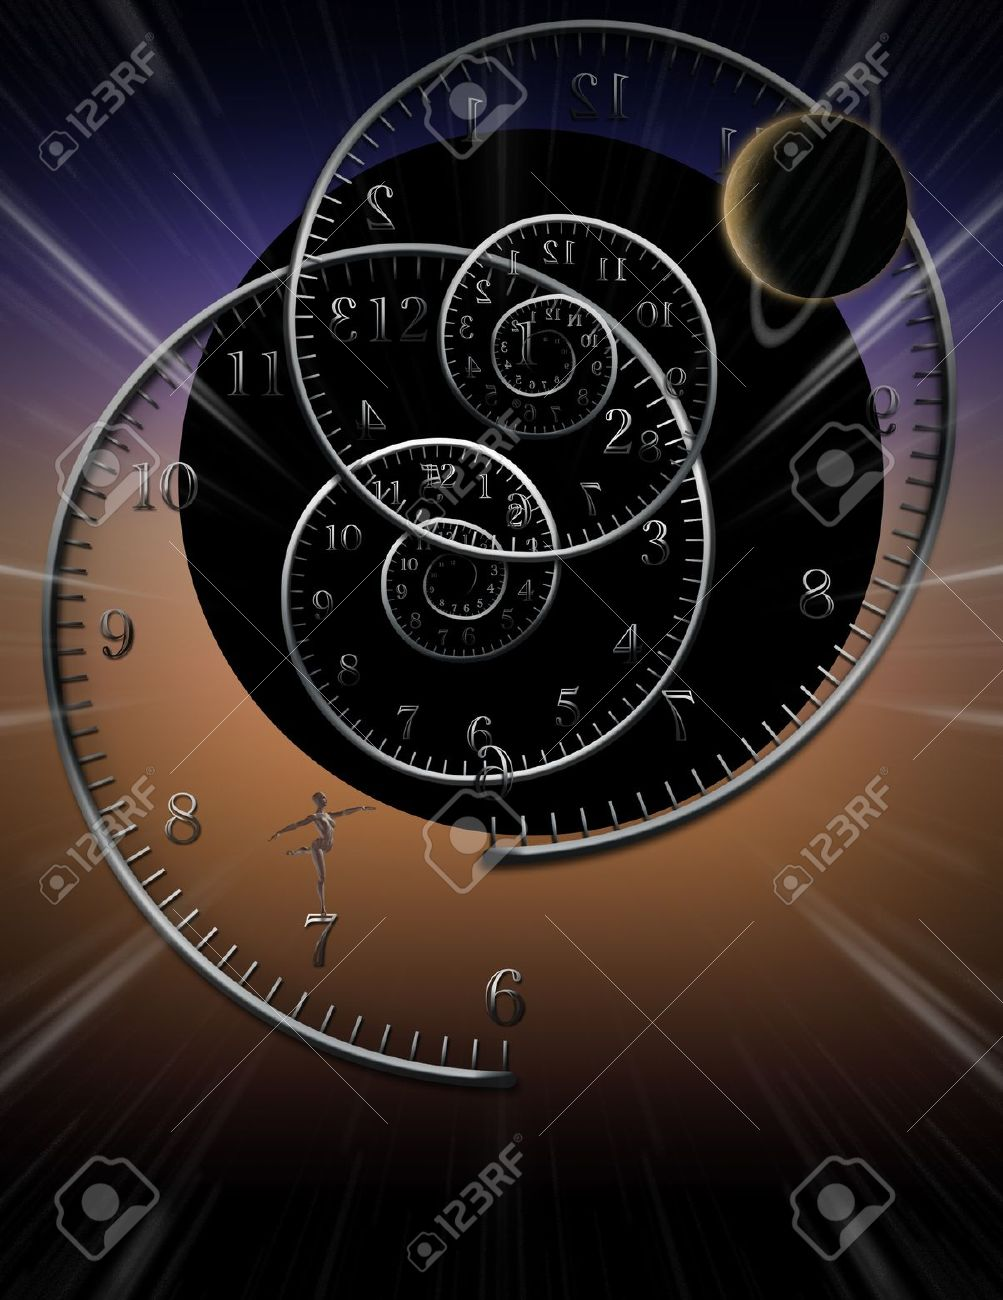 Spiral Clocks And Space Time Stock Photo Picture And Royalty Free